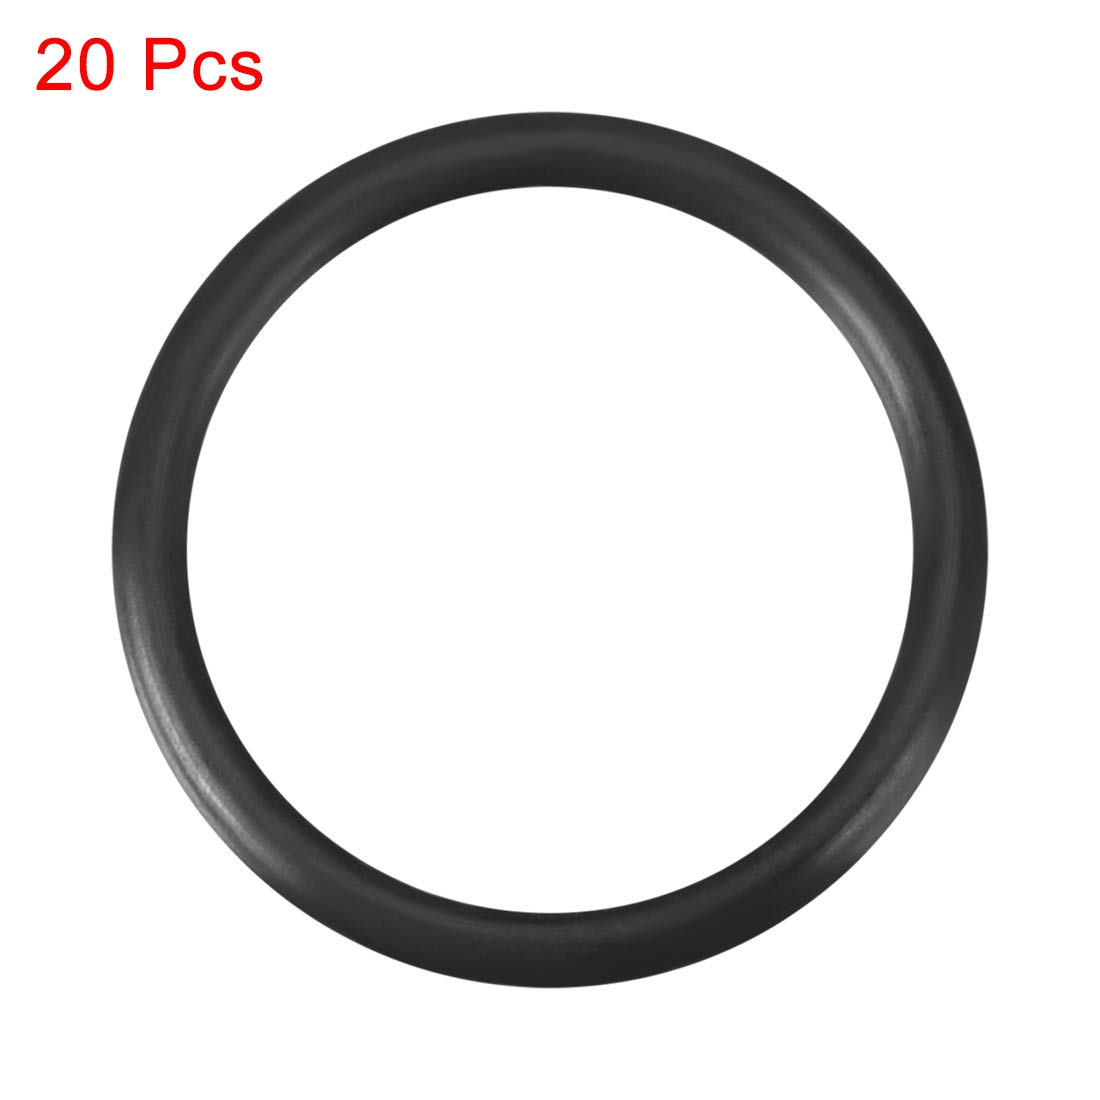 Round Seal Gasket 18.6mm OD Pack of 20 sourcing map O-Rings Nitrile Rubber 15mm Inner Diameter 1.8mm Width